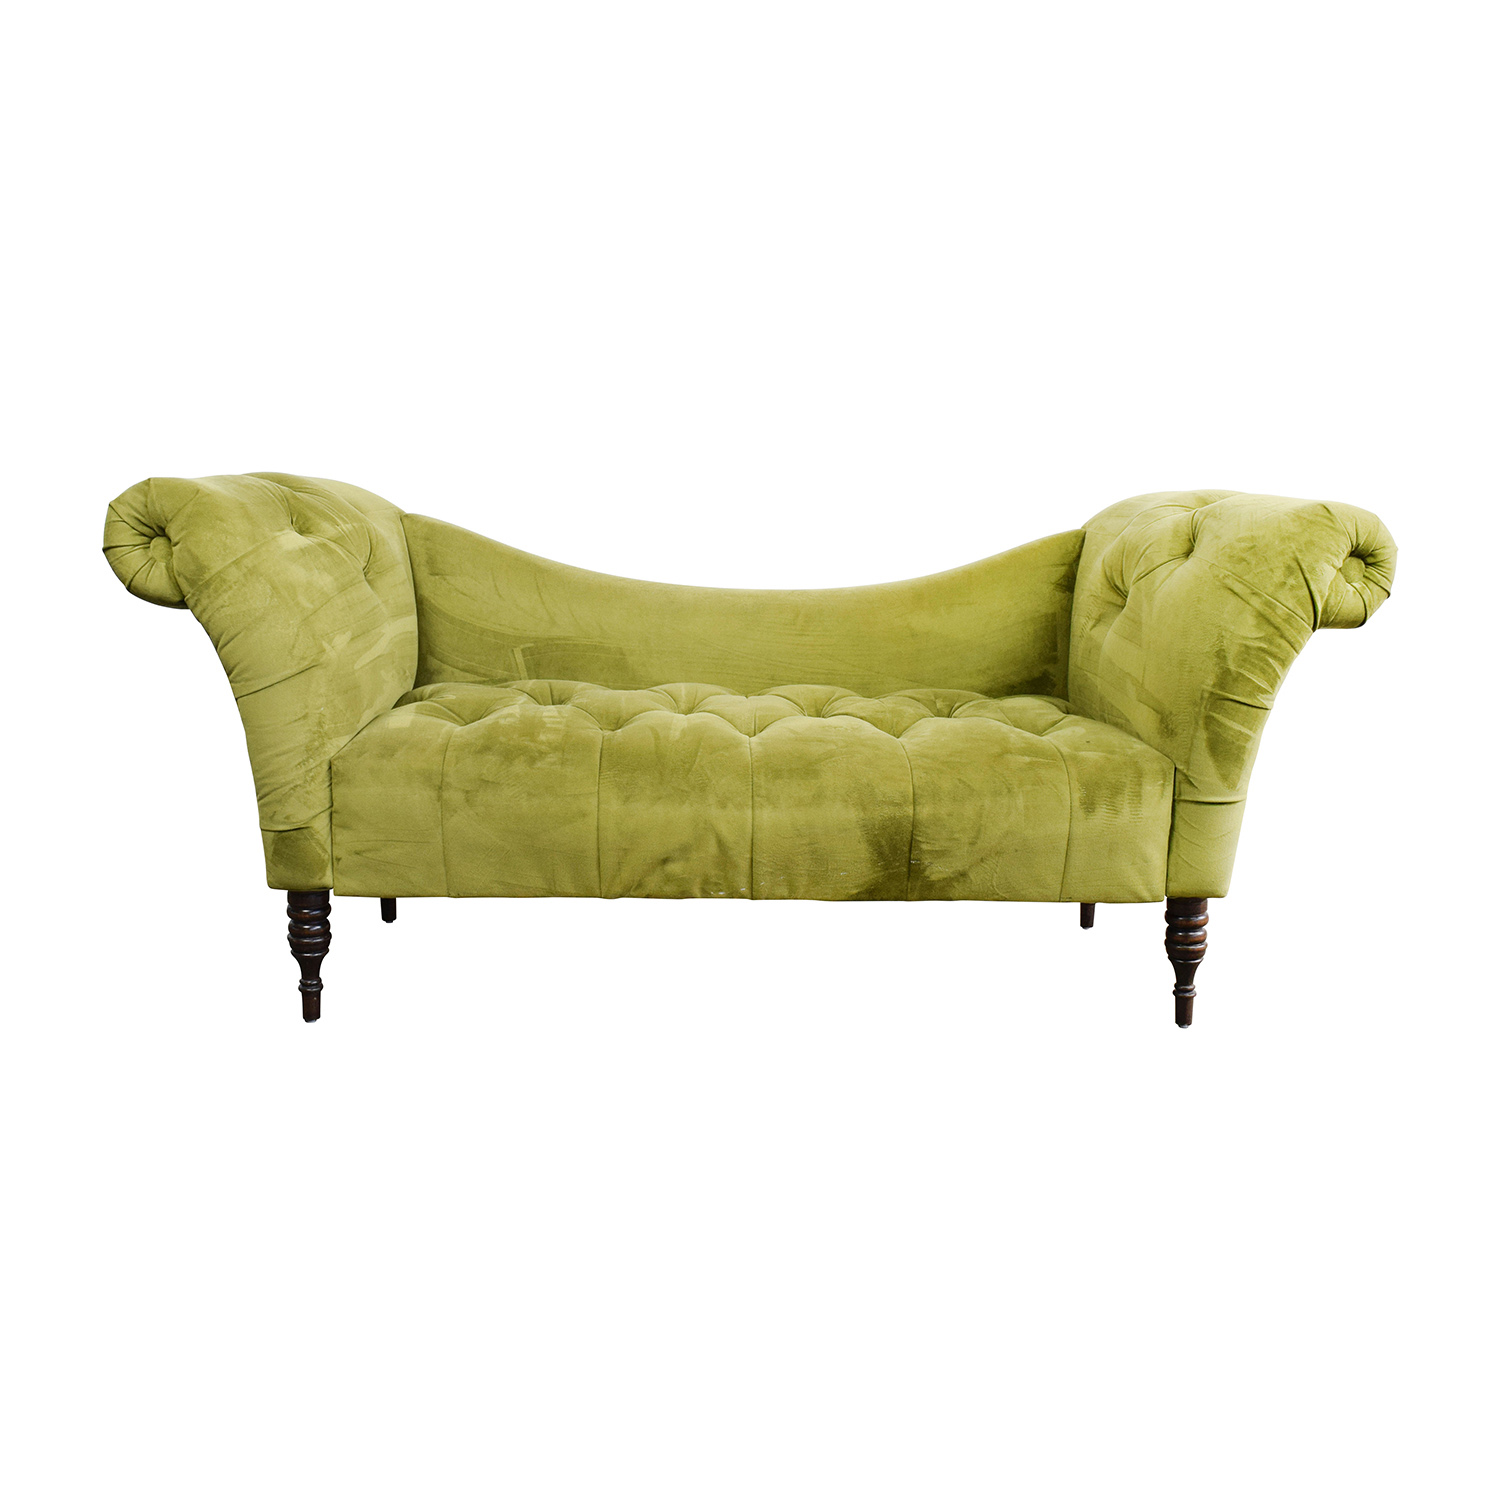 56% OFF Bob s Furniture Bob s Furniture Brown Loveseat Sofas